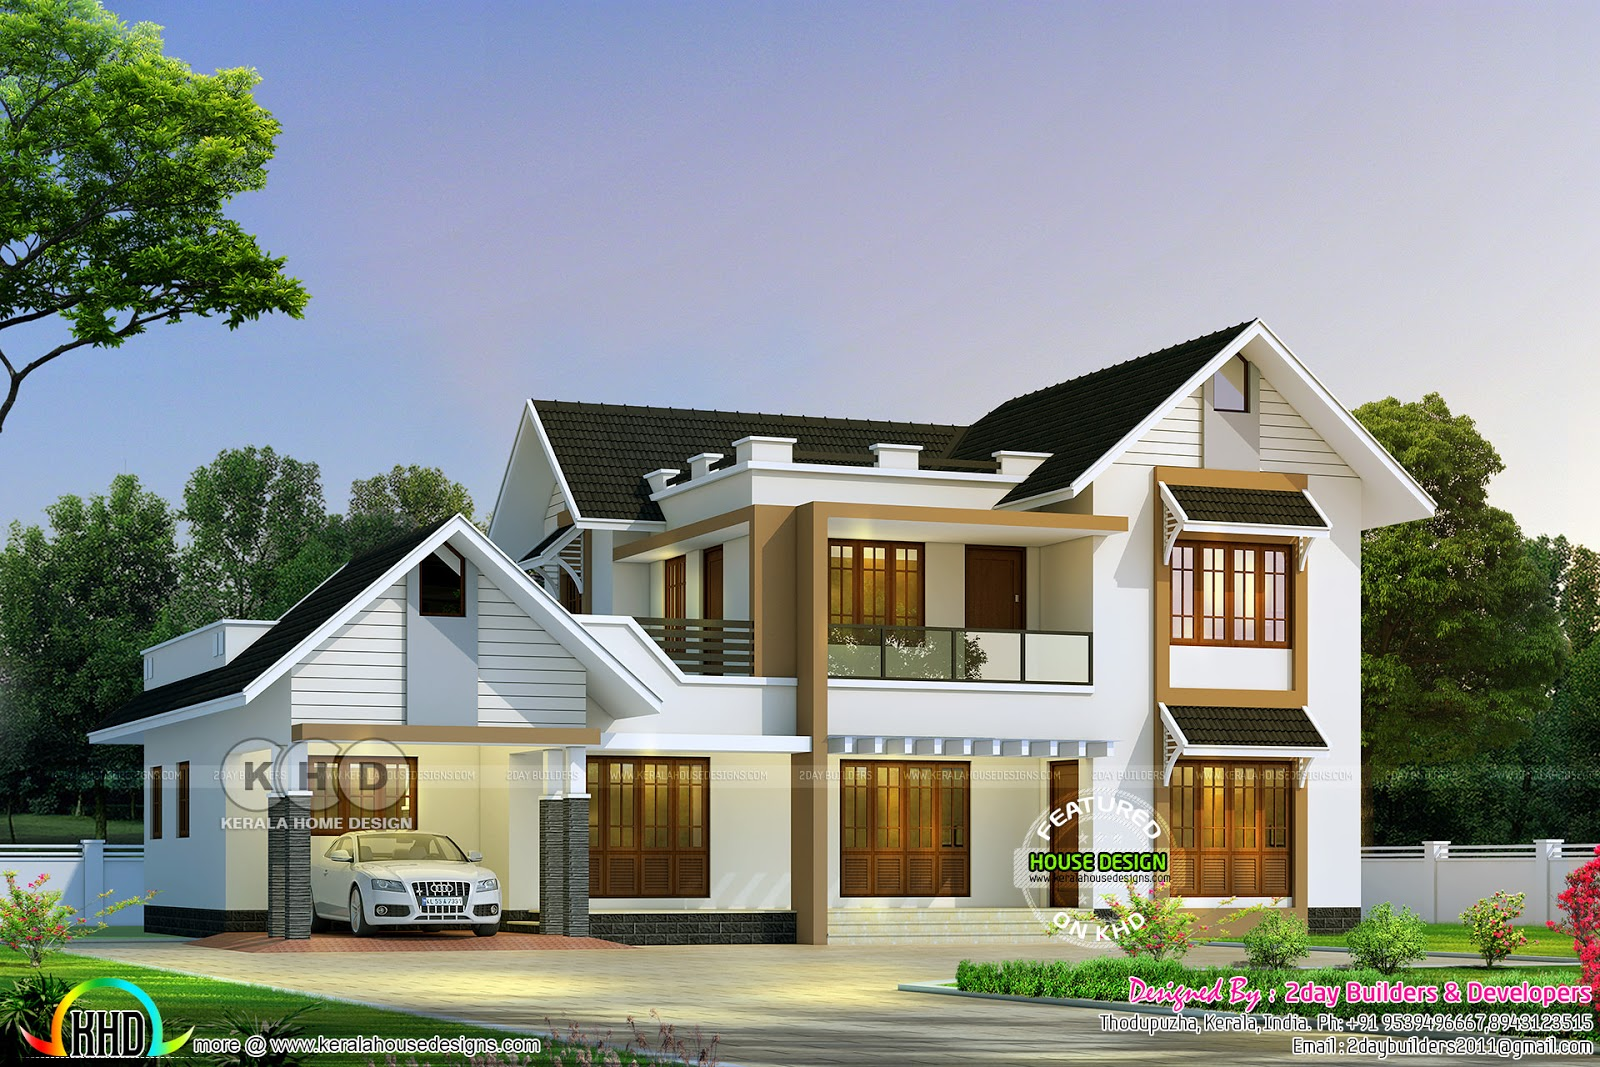 2017 kerala home design and floor plans for Kerala houses designs